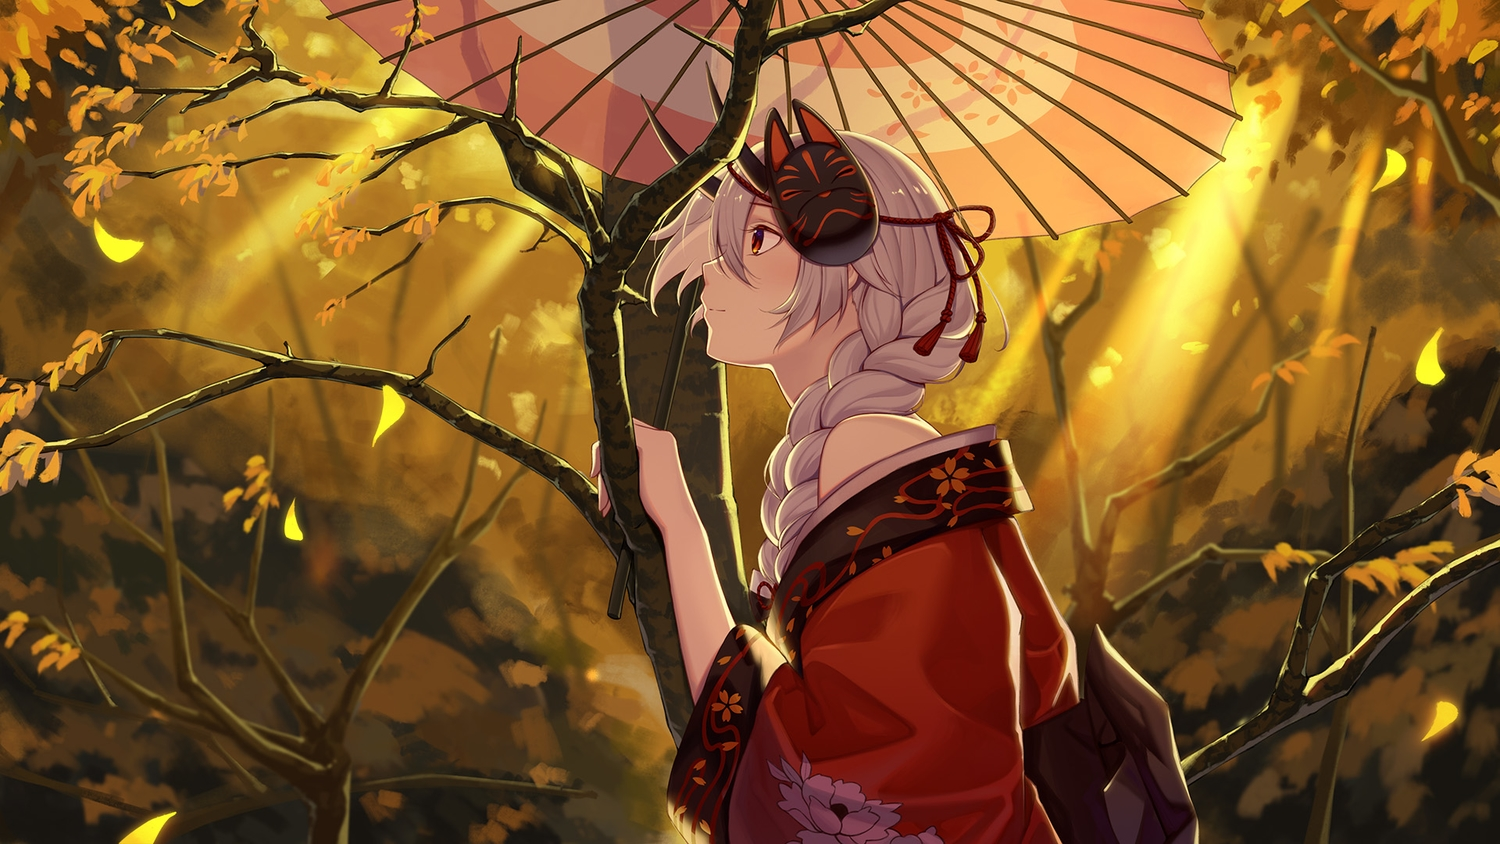 autumn baseness braids fate/grand_order fate_(series) horns japanese_clothes leaves mask petals ponytail red_eyes tomoe_gozen tree umbrella white_hair